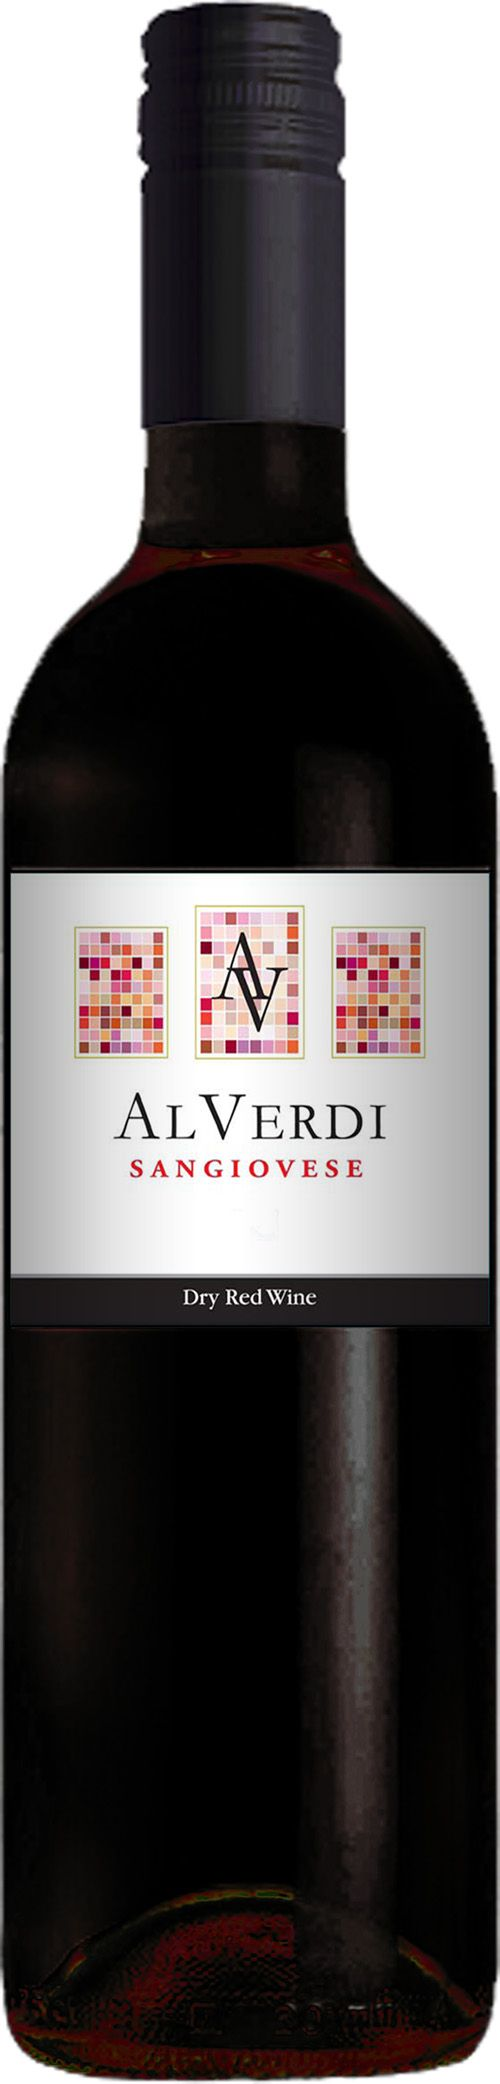 Sangiovese.  Learn more about the different types of red wine at http://hangingwinerackonline.com/types-of-red-wine/